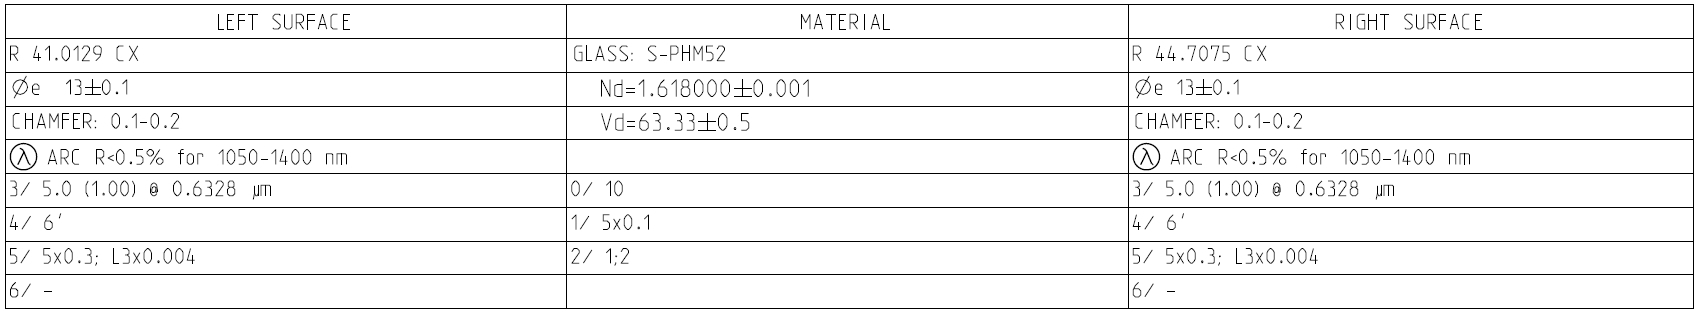 Table of parameters of the typical lens drawing